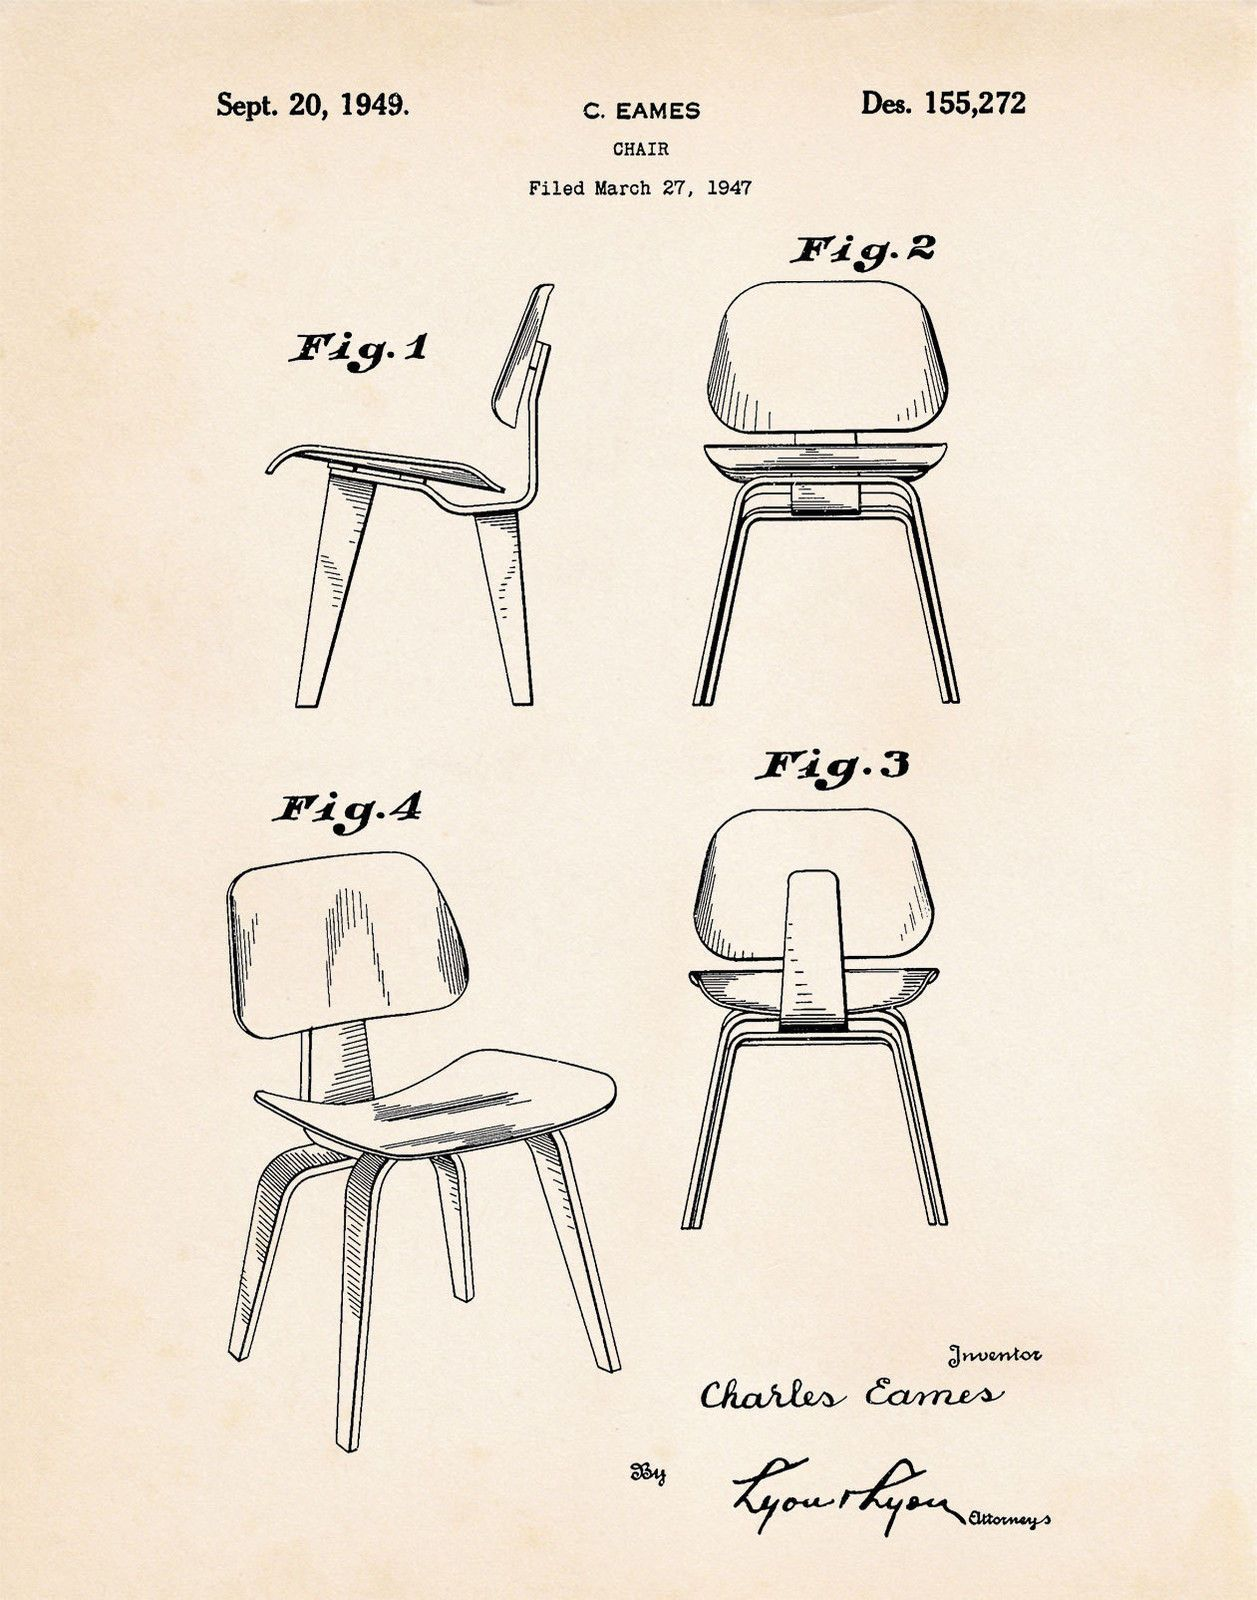 Eames Chair Drawing 1947 Eames Modern Chair Patent Retro Mid Century Furniture